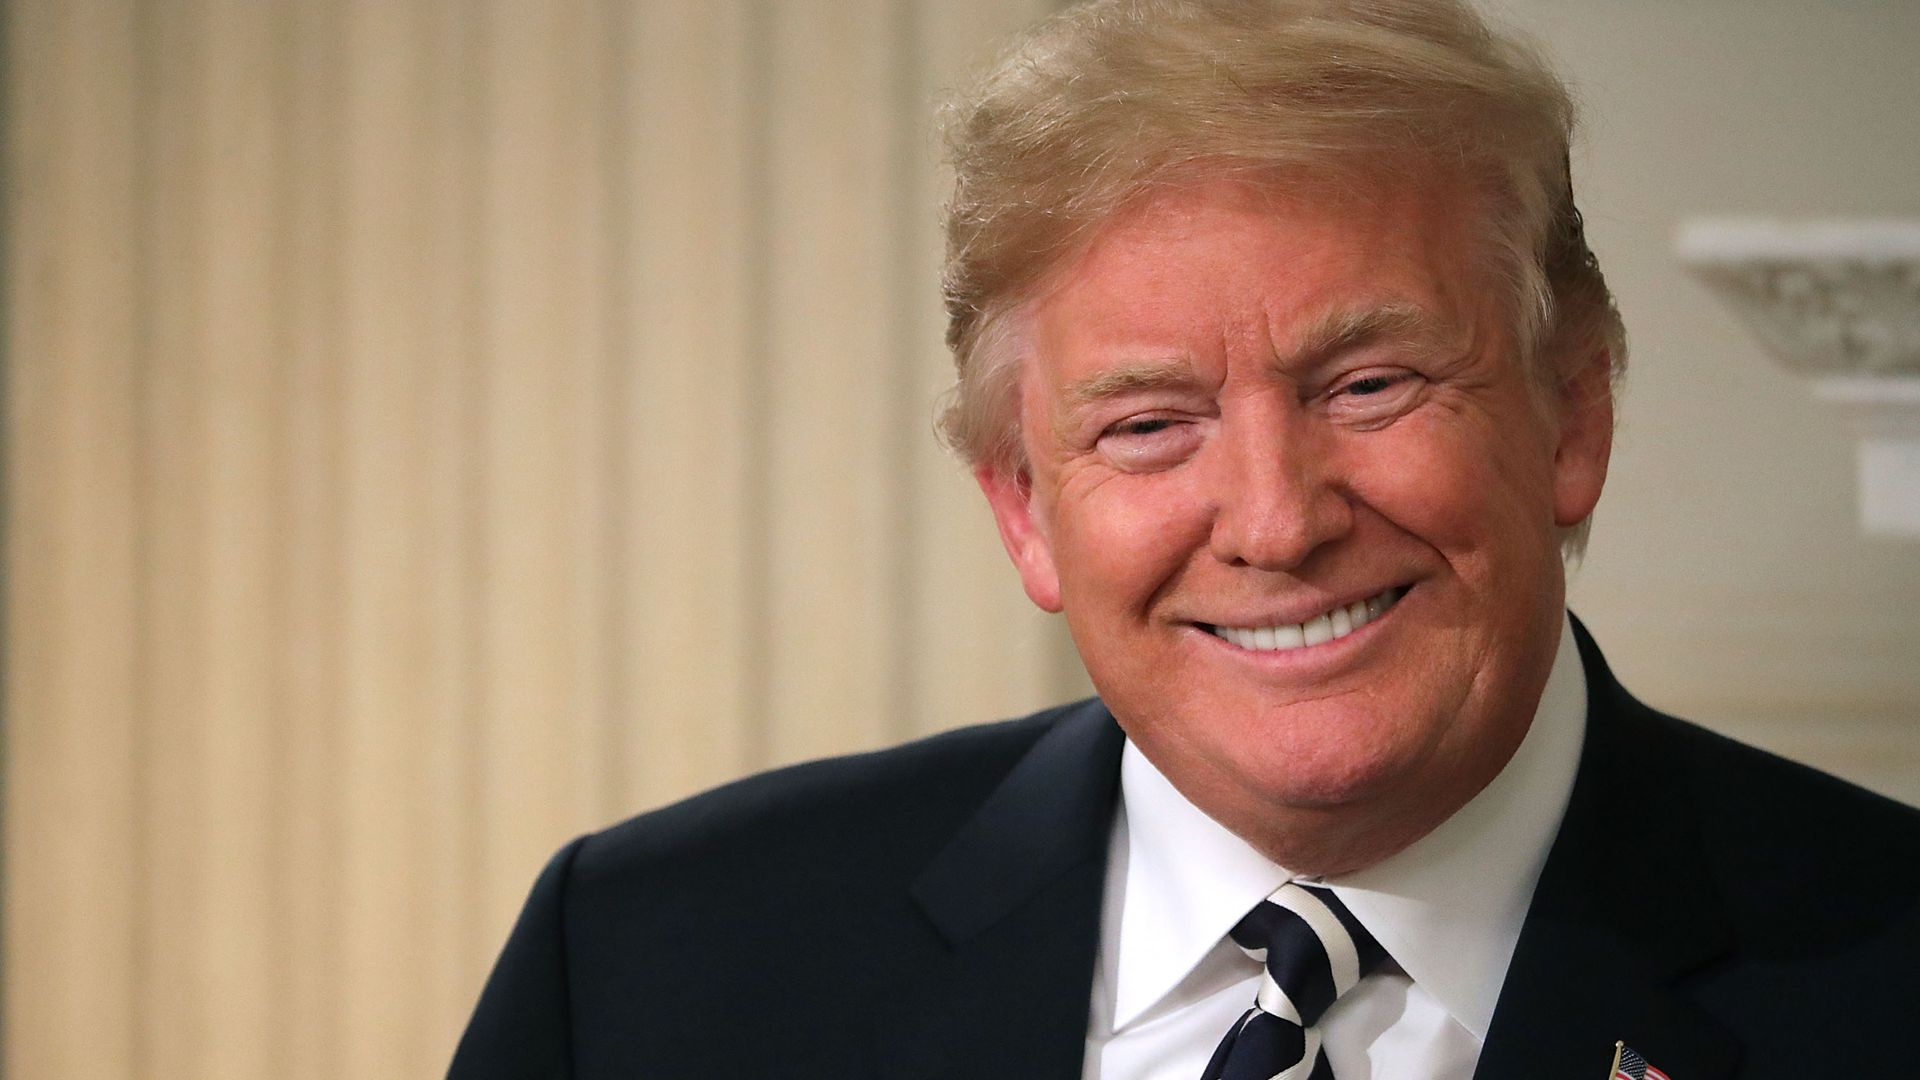 Trump smiles in a black suit before a white background.